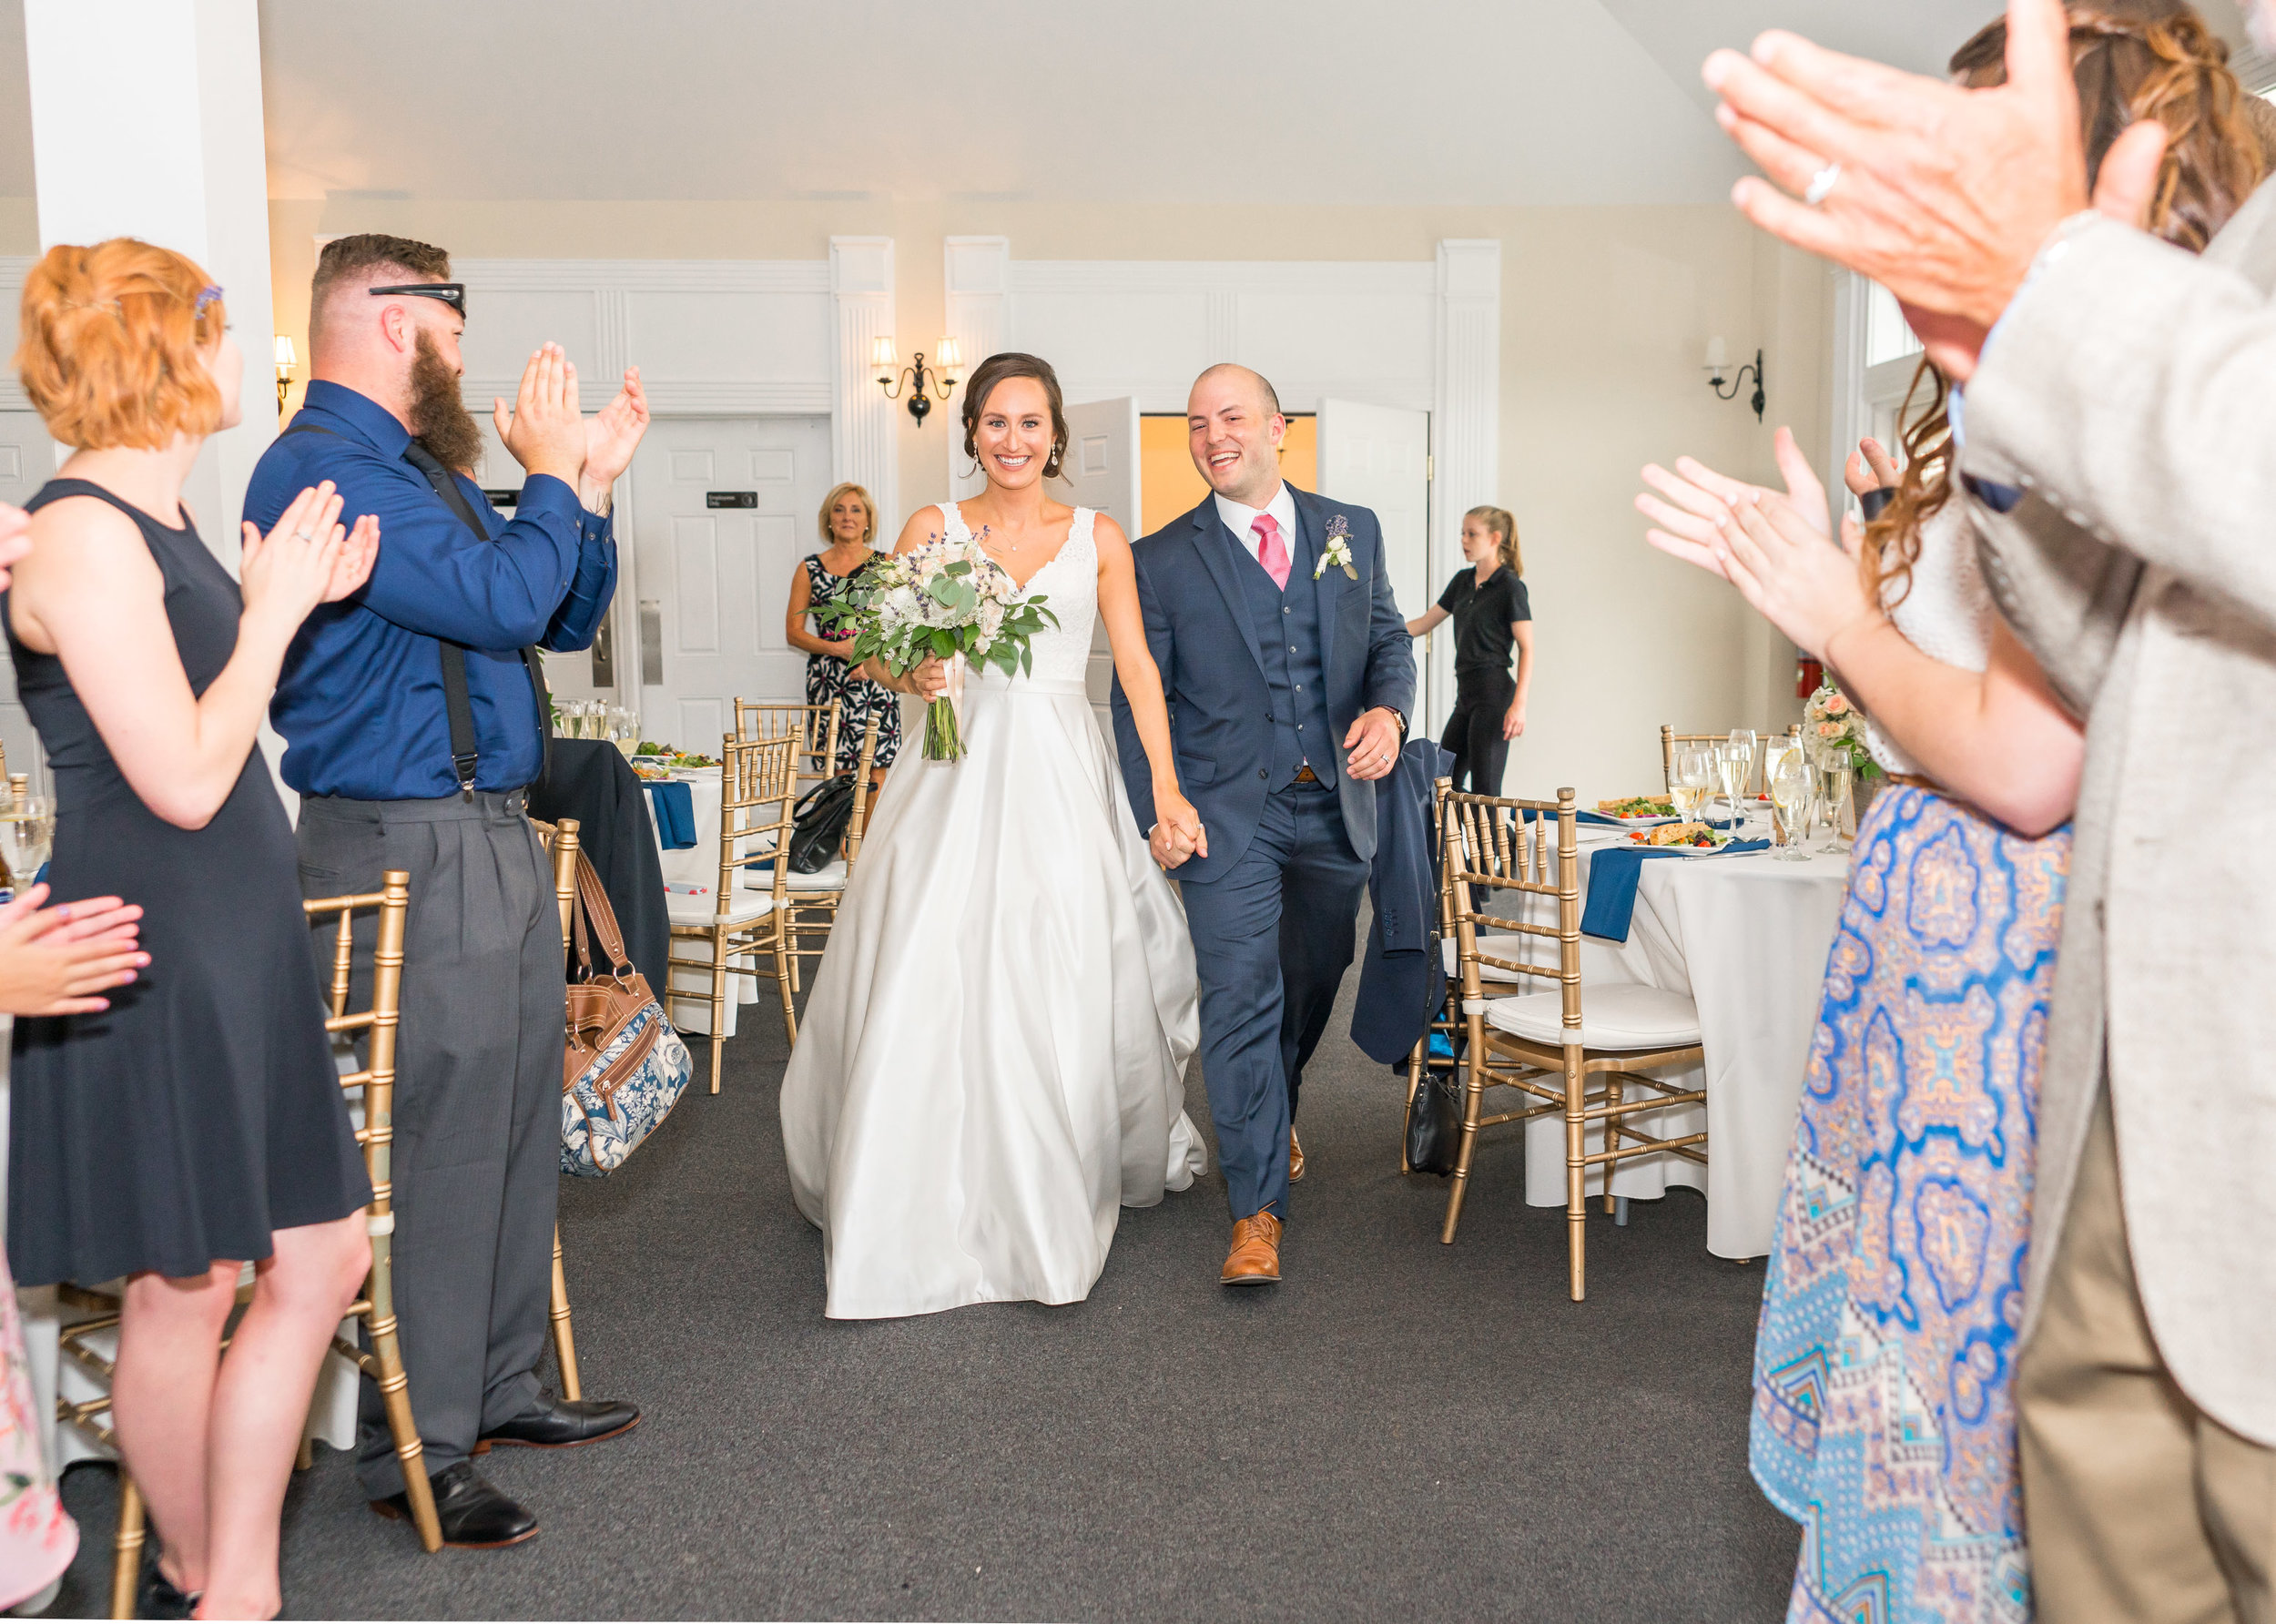 Wedding reception at Springfield Manor Winery and Distillery